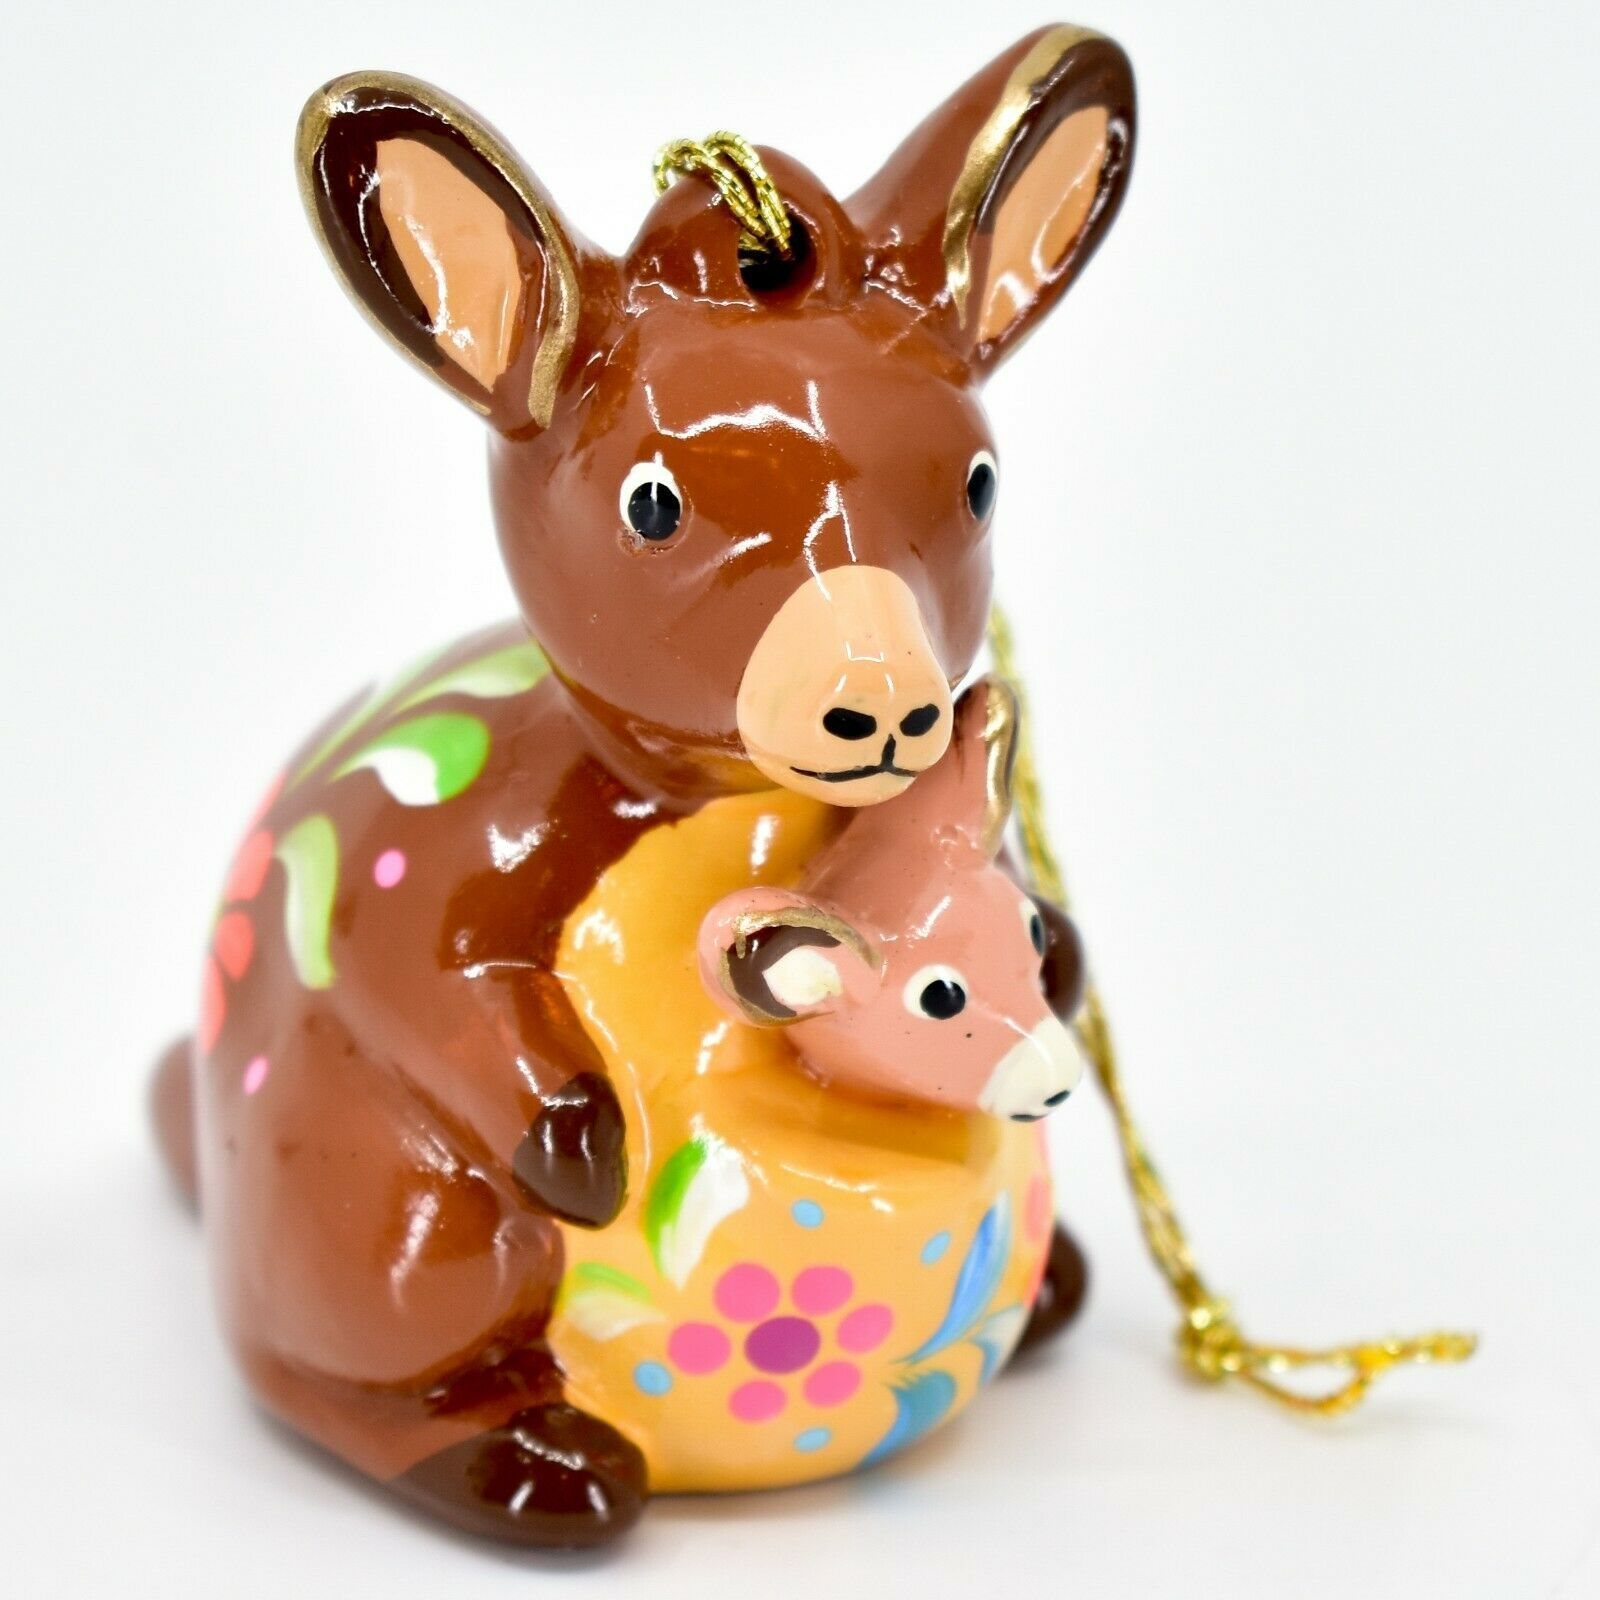 Handcrafted Painted Ceramic Kangaroo & Joey Confetti Ornament Made in Peru